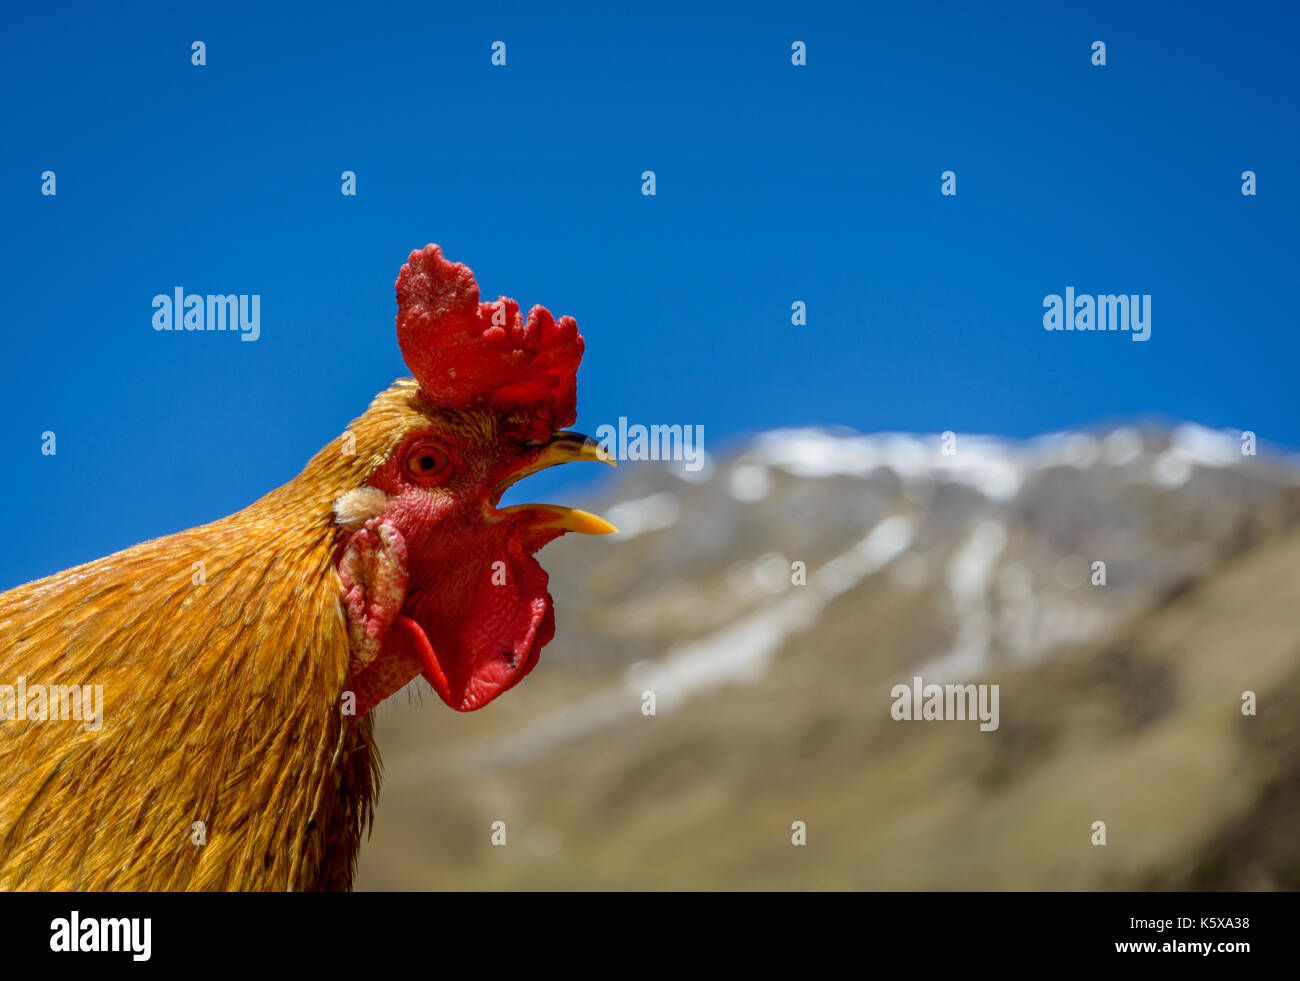 a red rooster sings the song on the farm in mountain - Stock Image